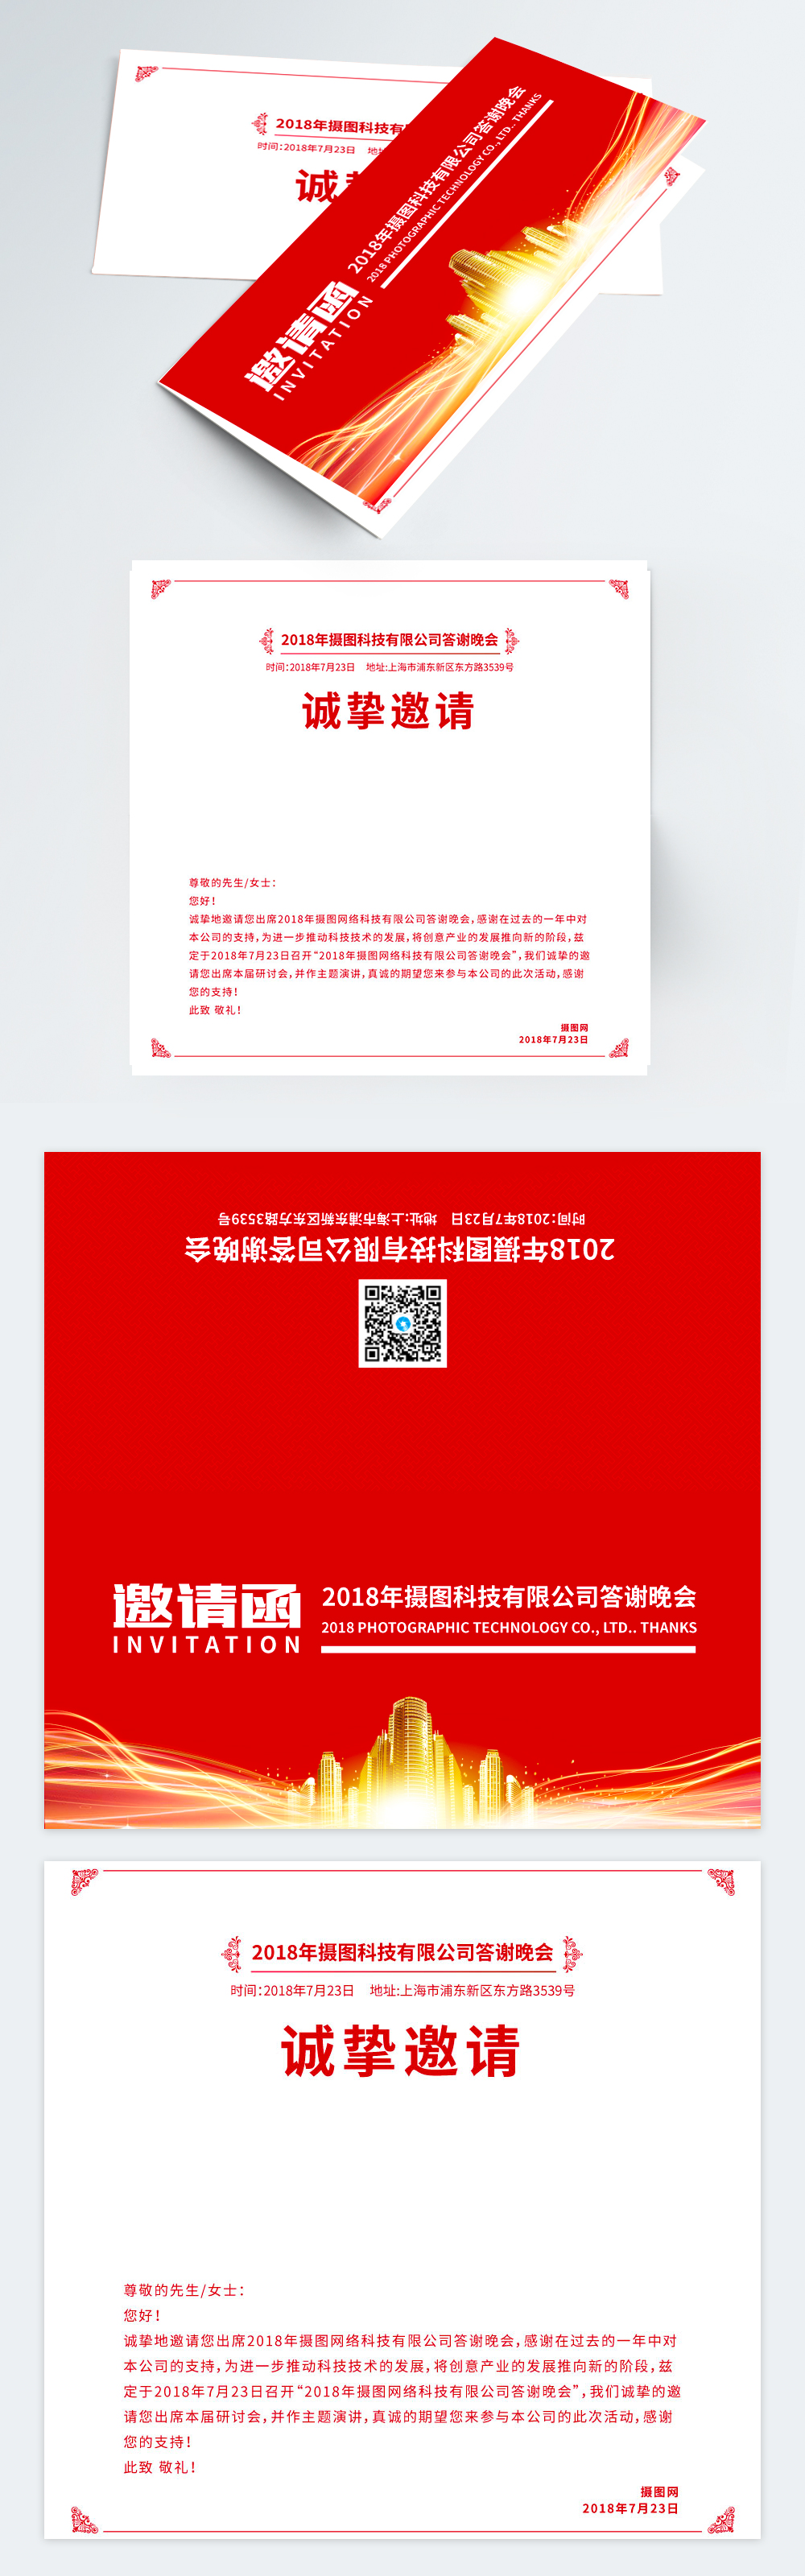 Invitation letter for red wedding party template images_invitation ...